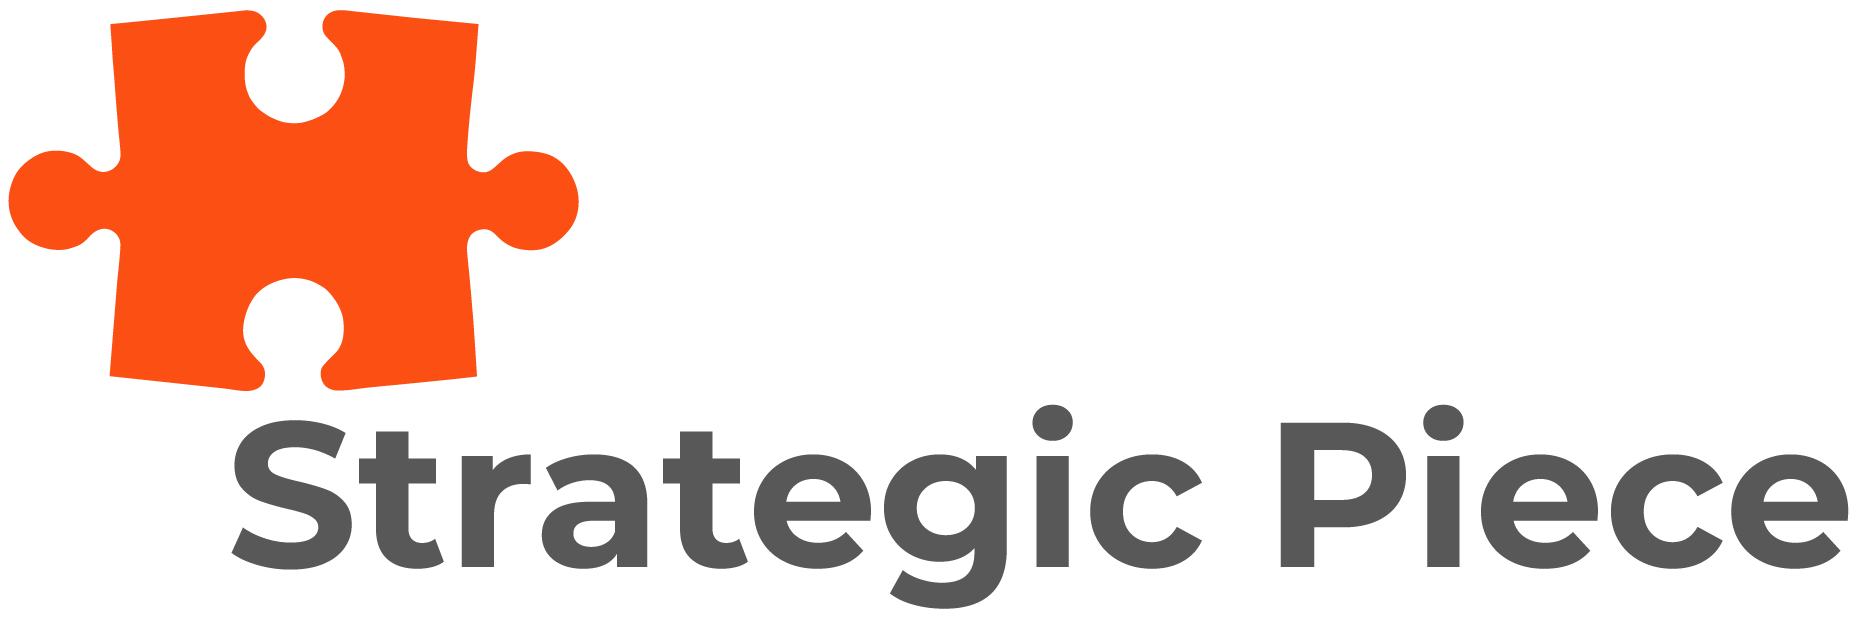 Strategic Piece Logo